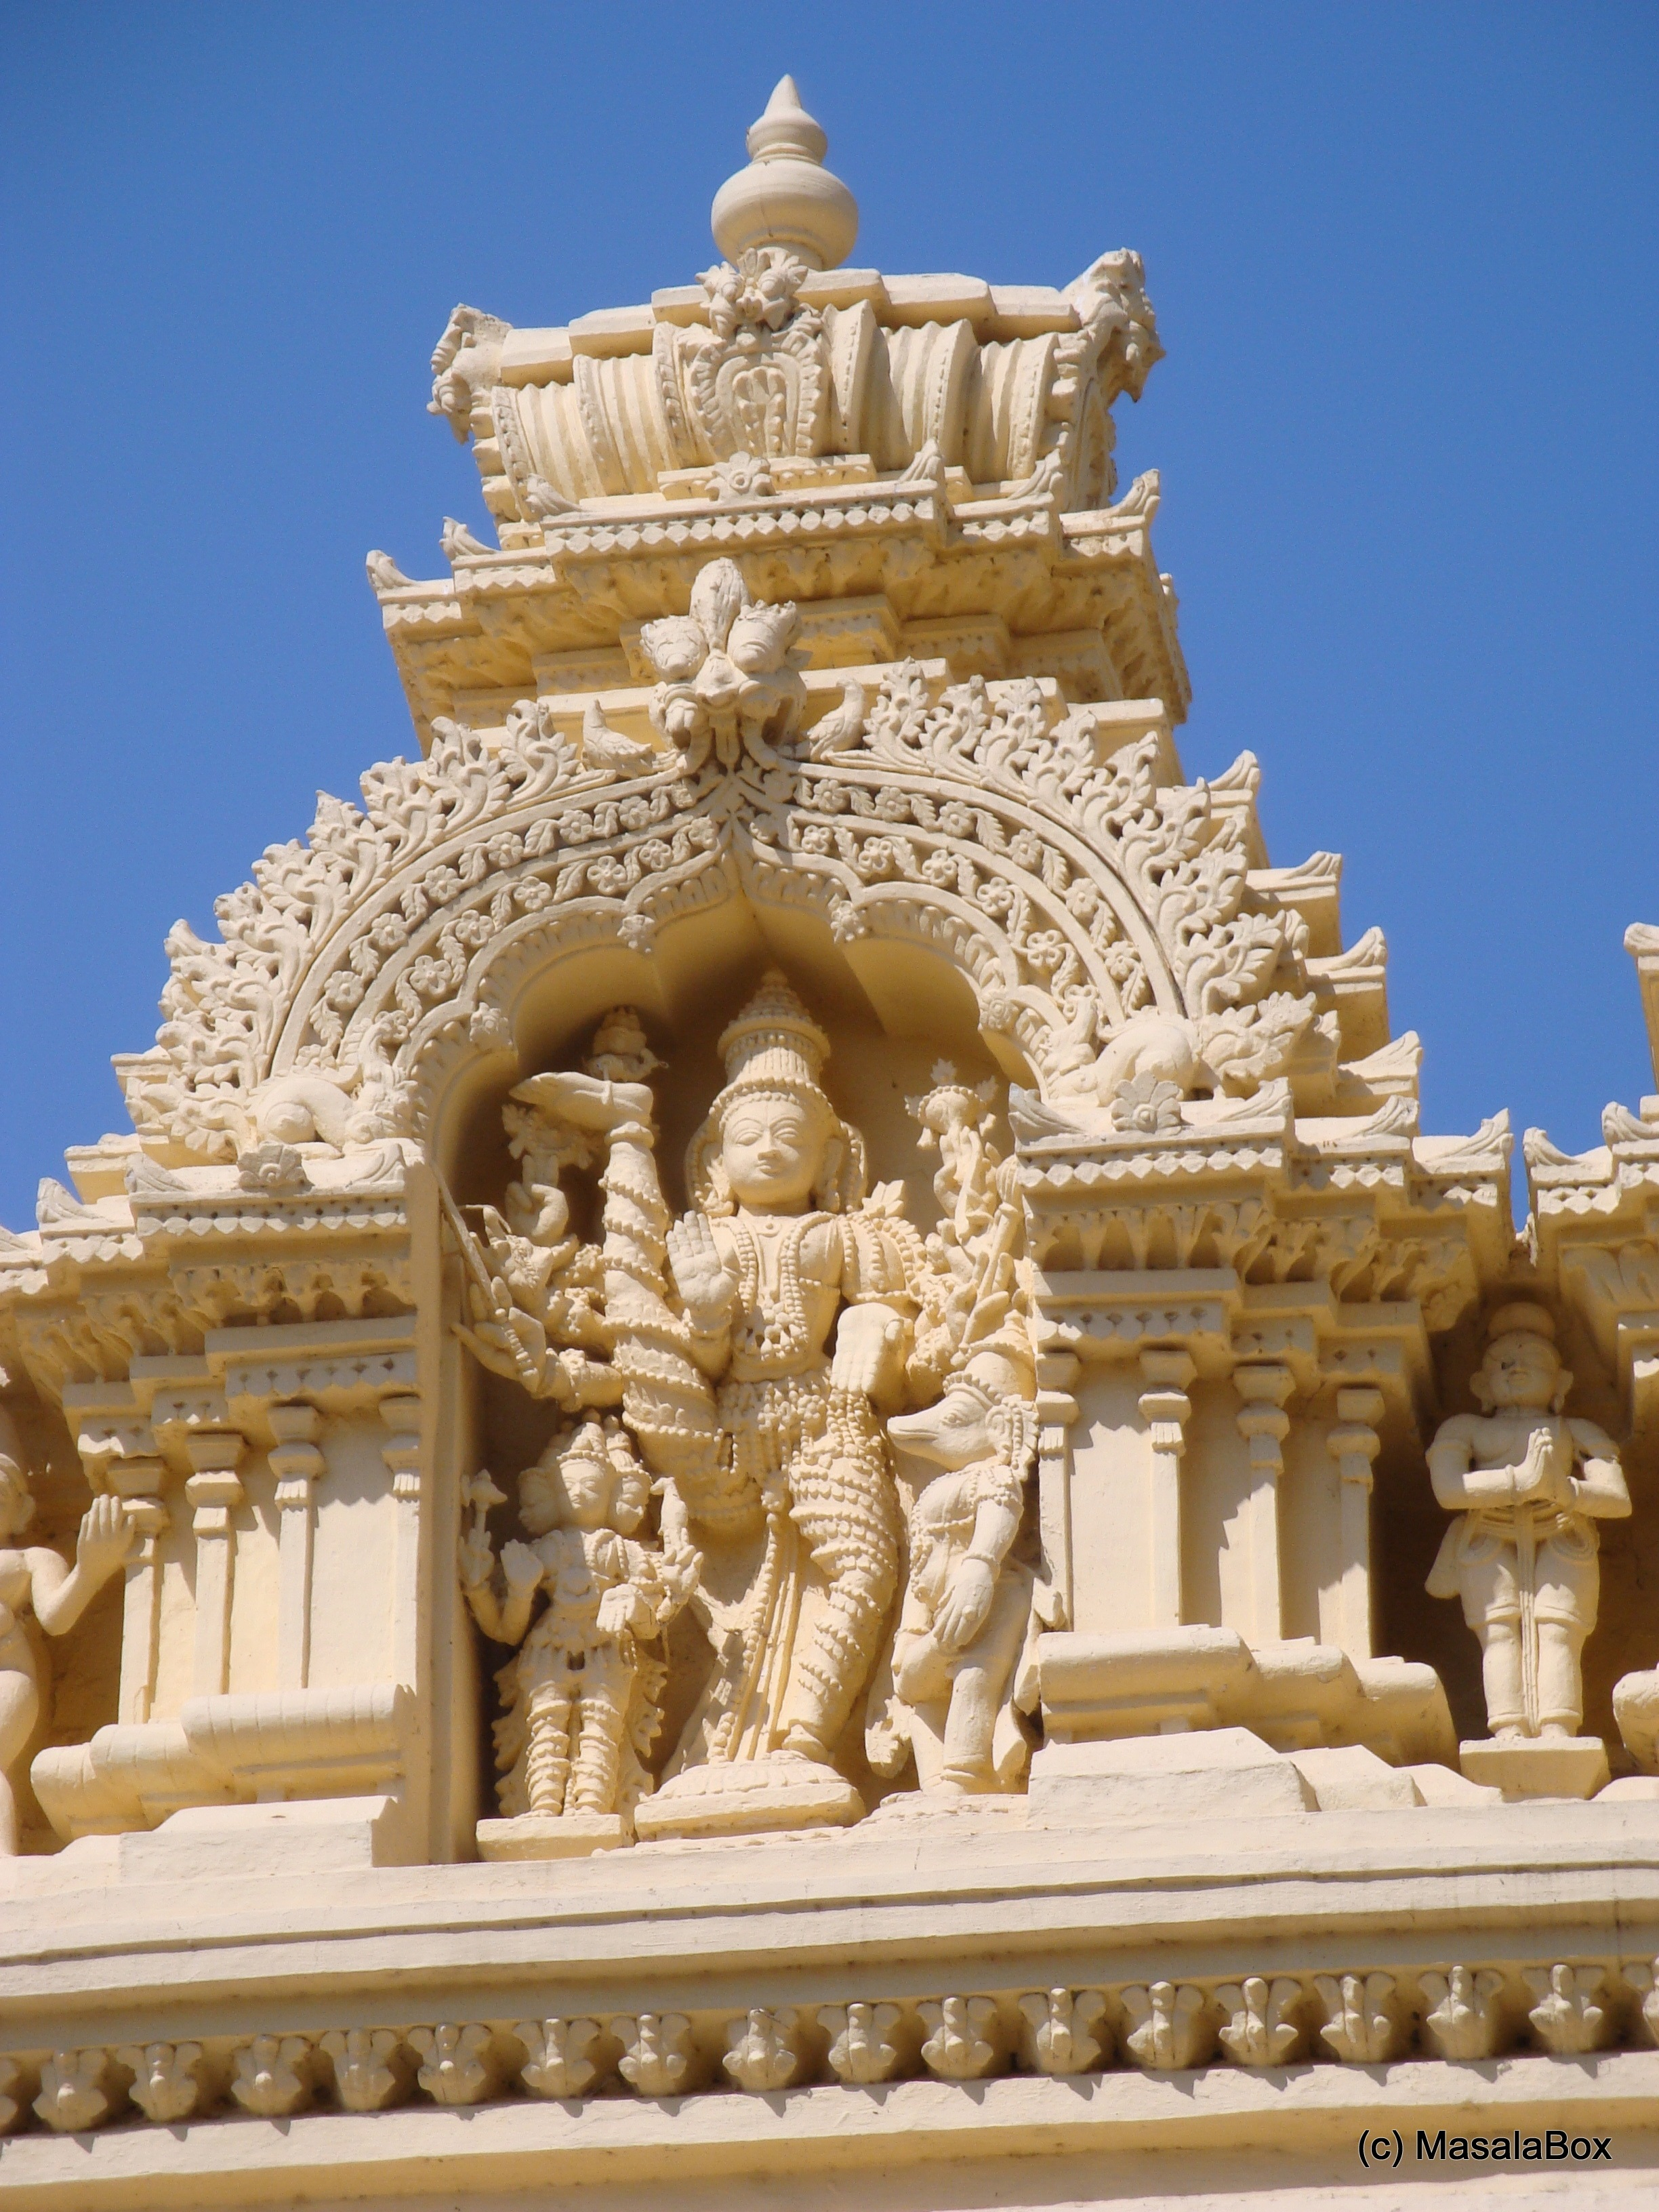 One of the carvings atop the mandapam